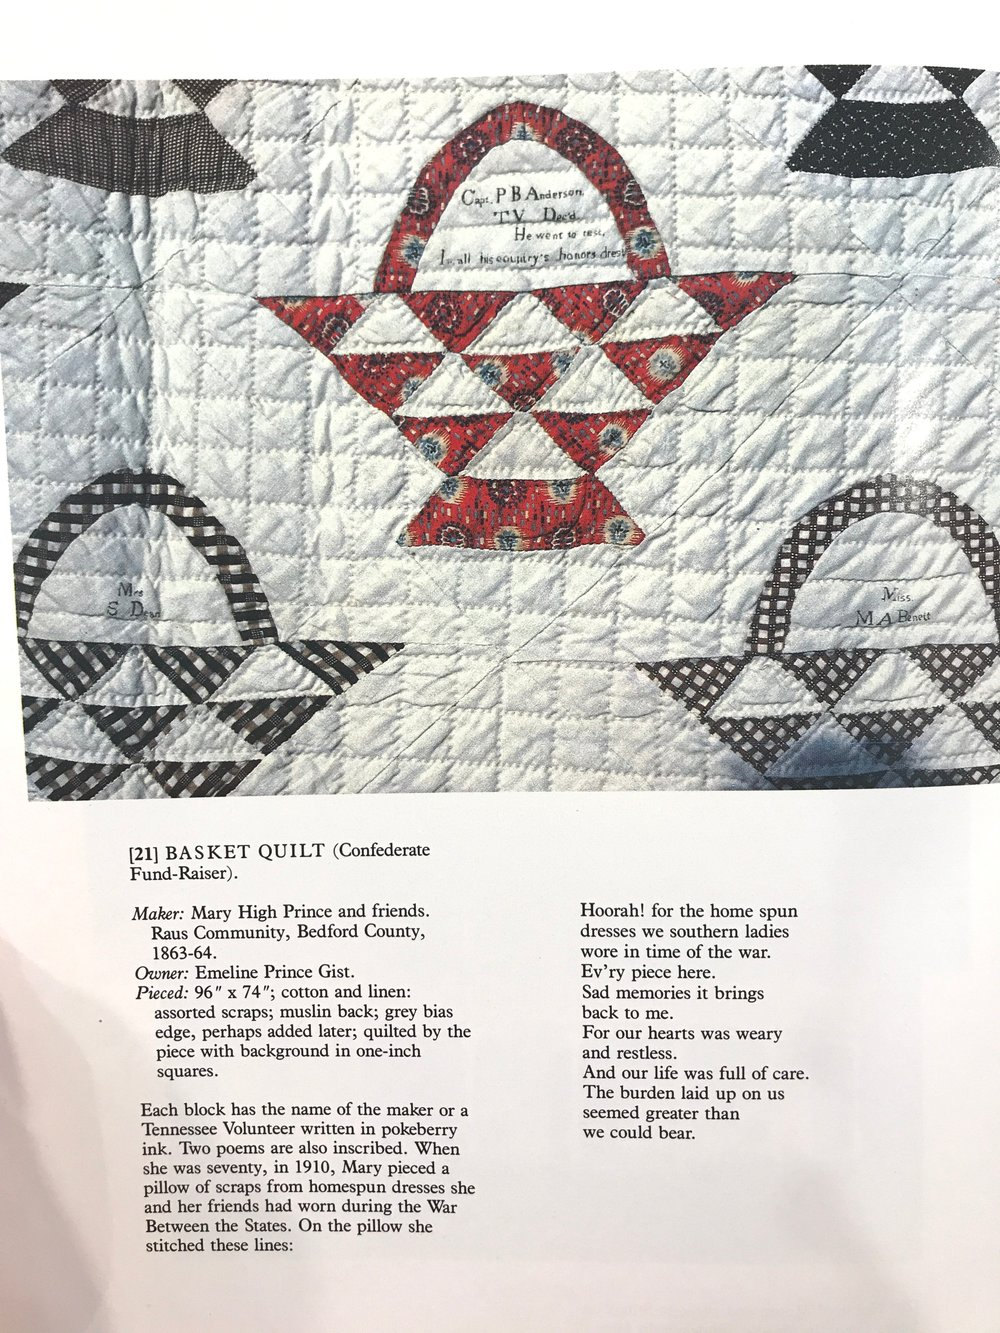 This is the quilt we chose as the inspiration for our design.